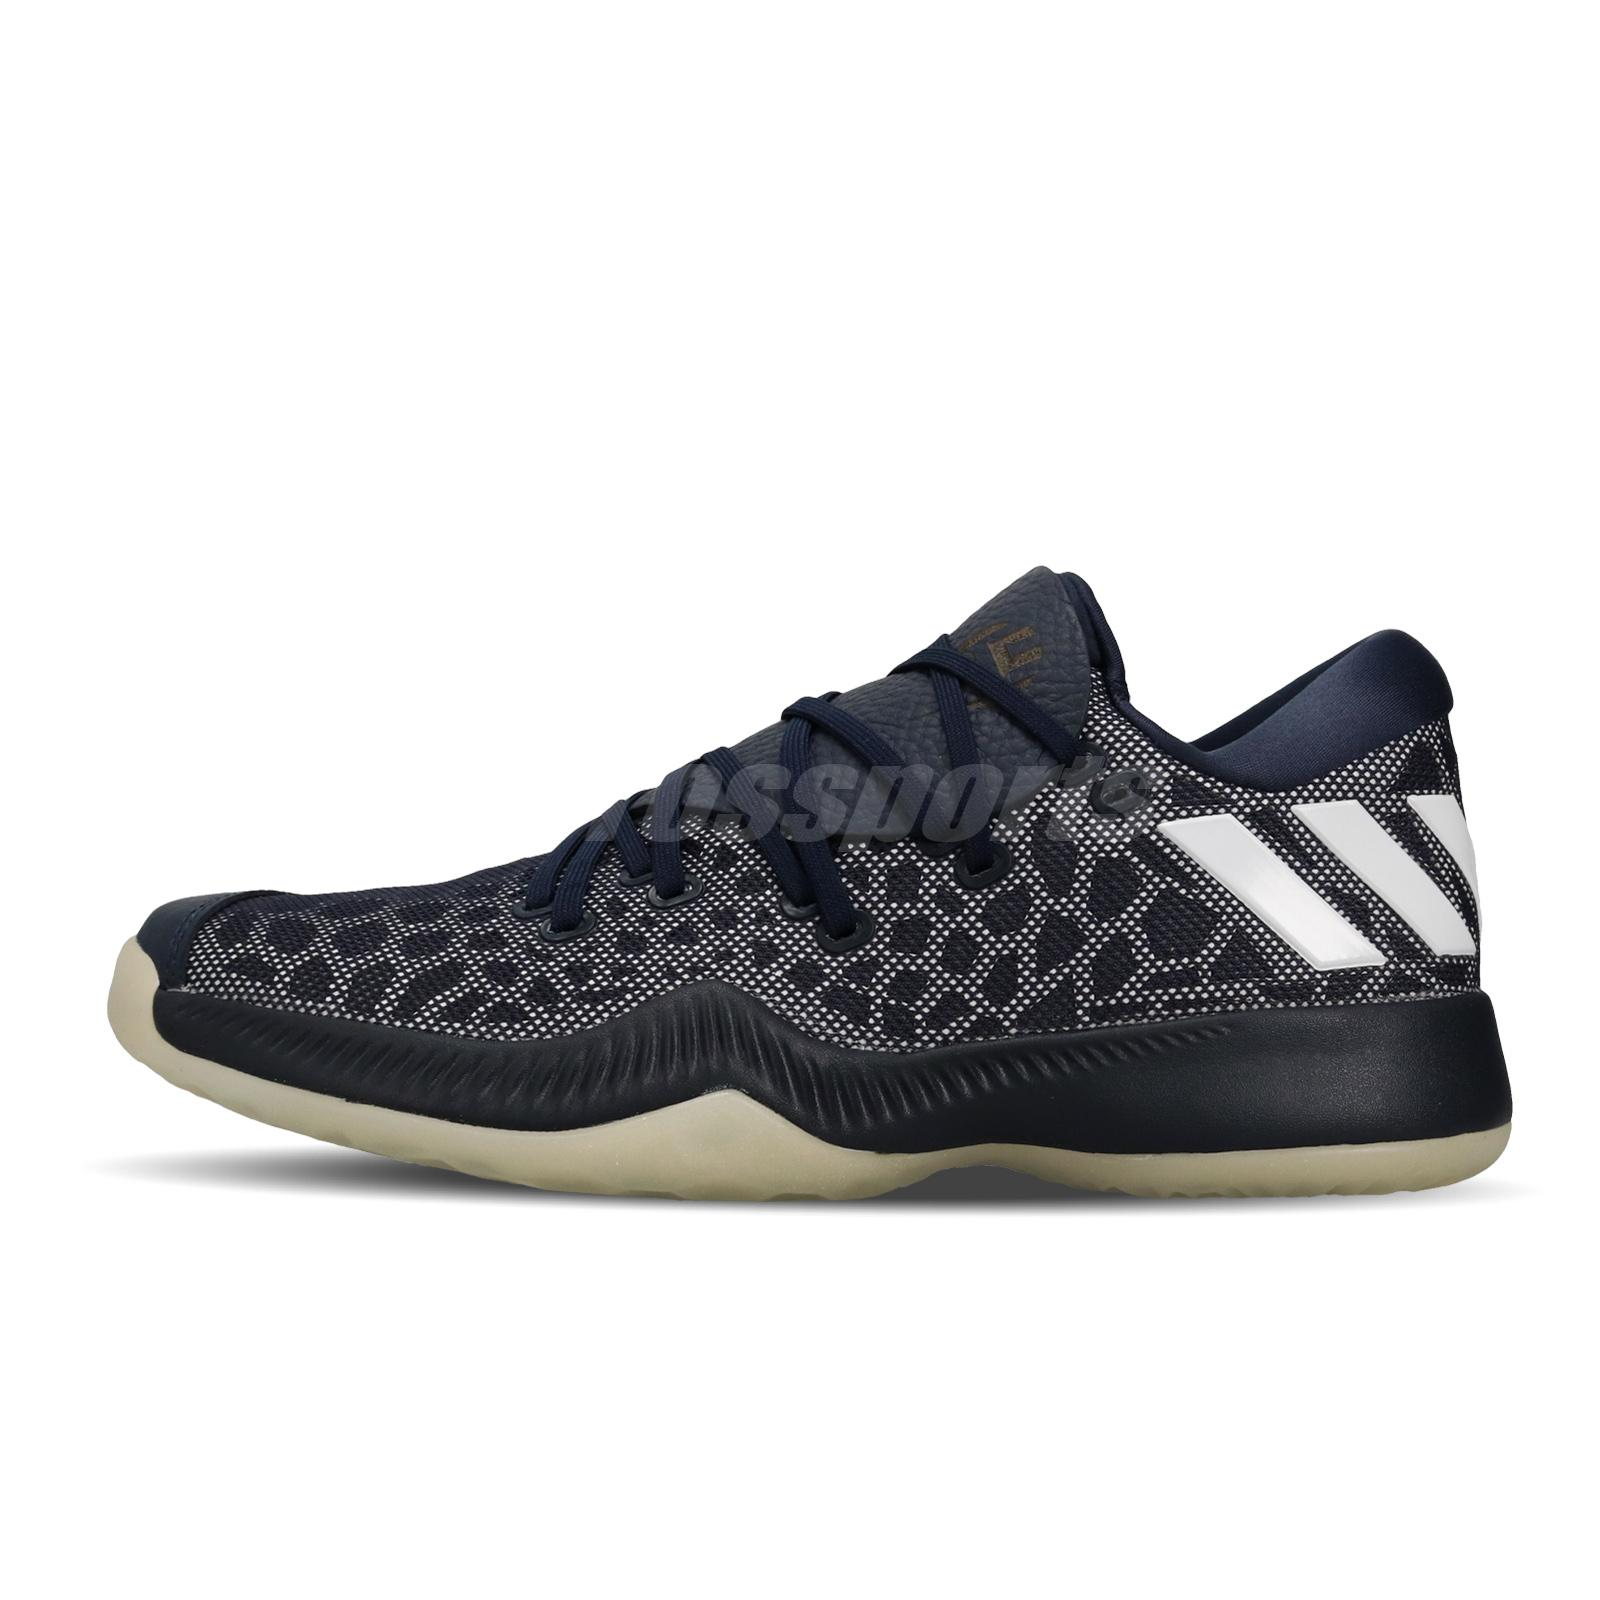 adidas Harden B / E Bounce James 13 Collegiate Navy Men Basketball Shoes  CG4195